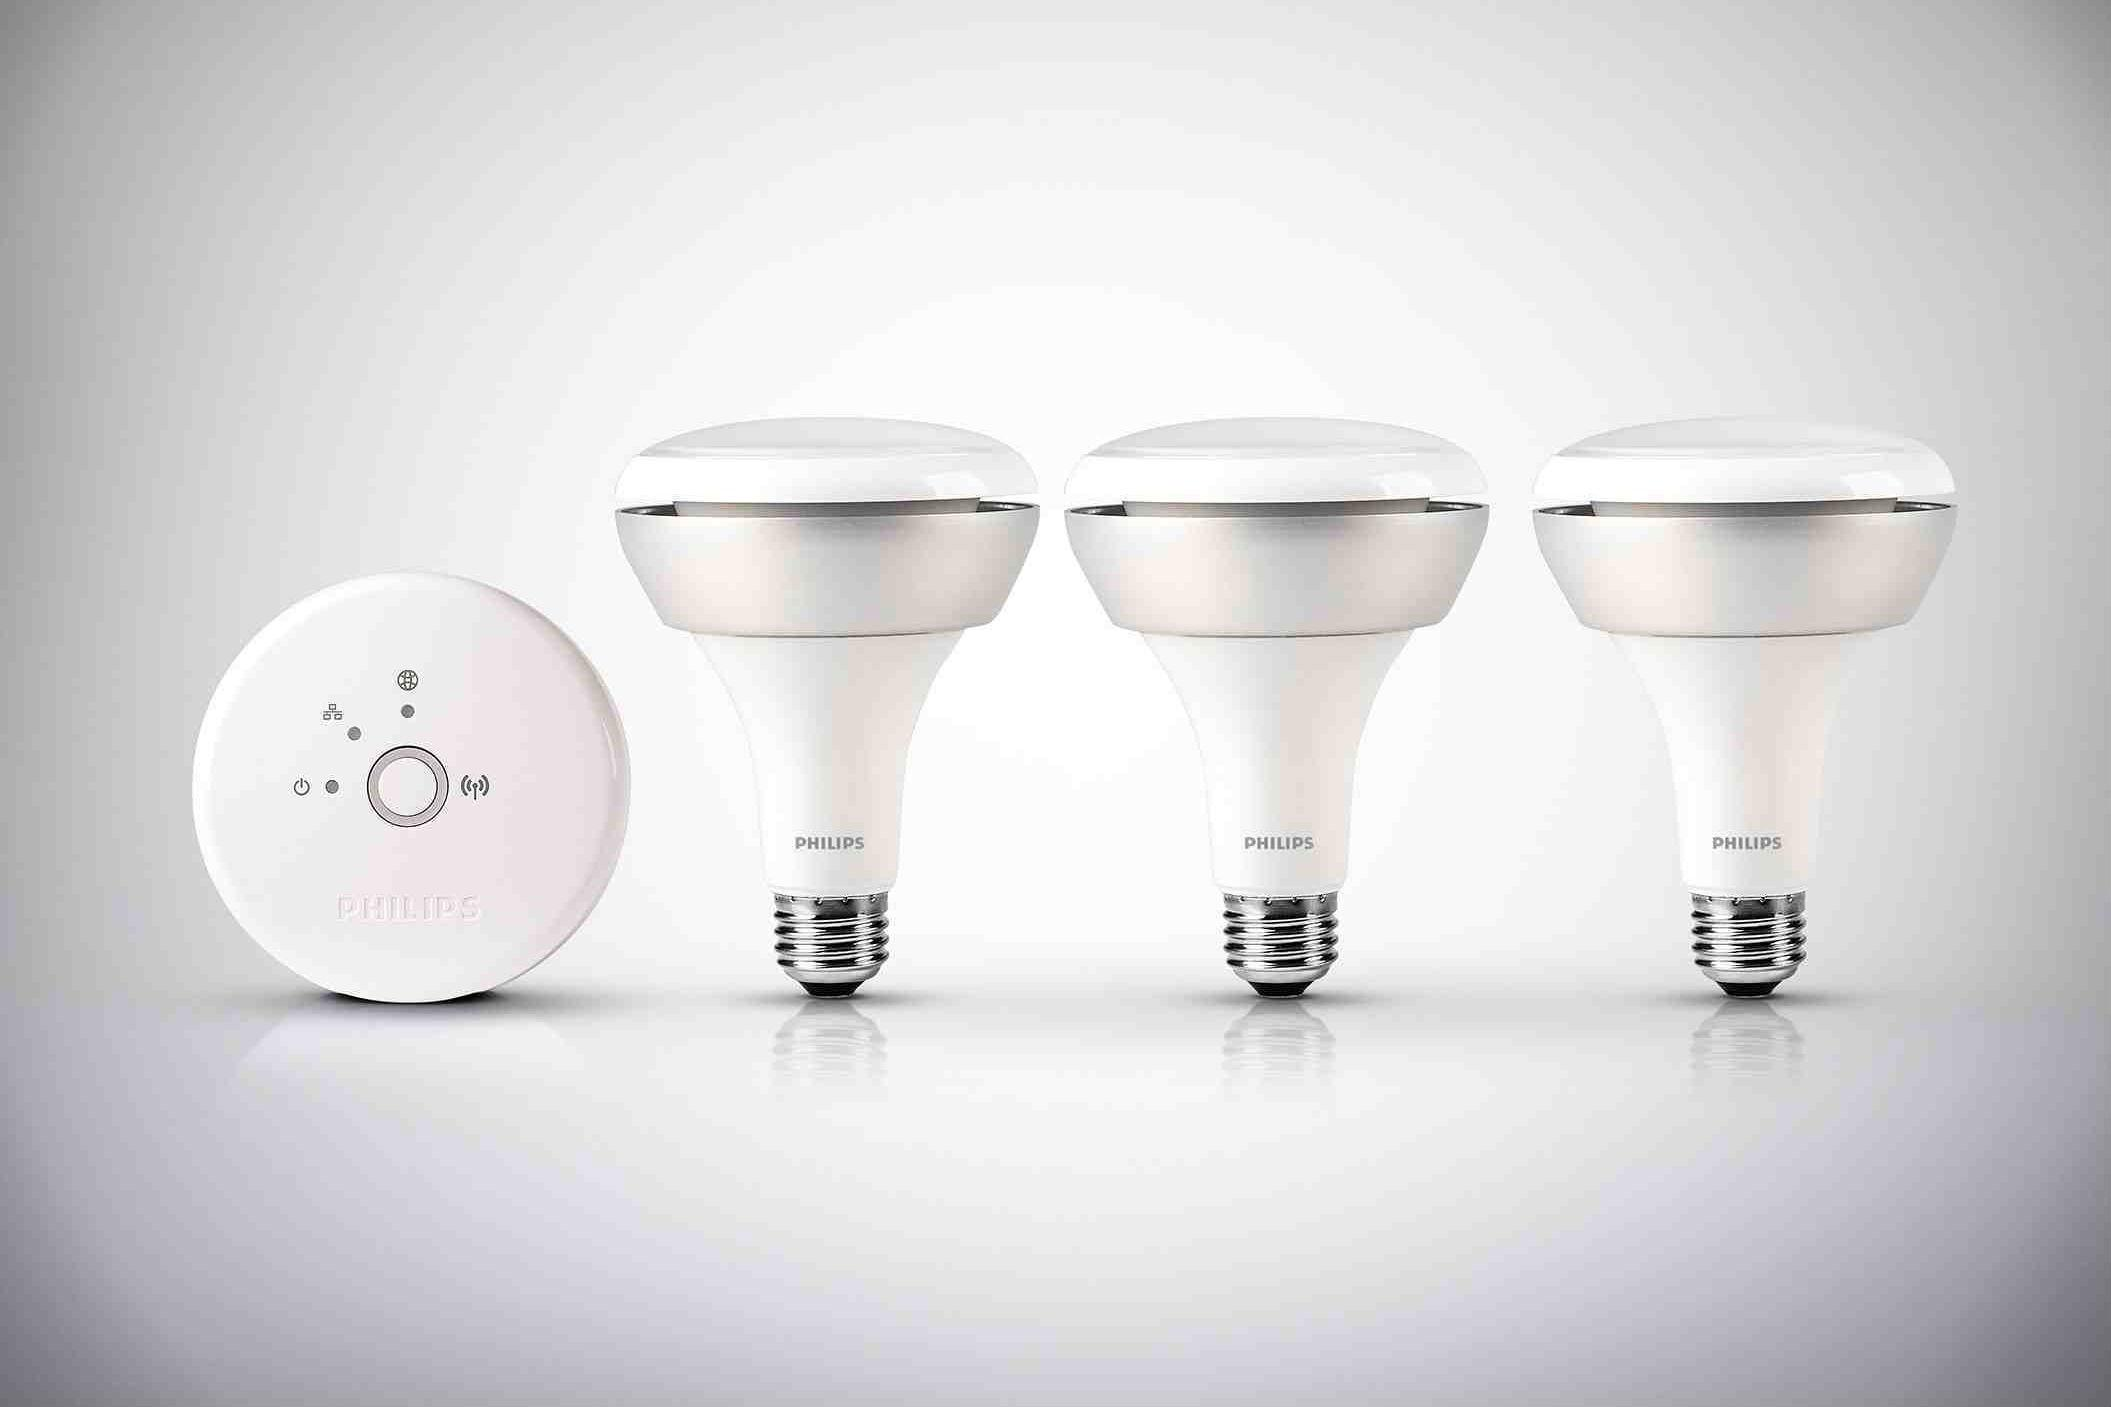 Philips Planning Its Own iBeacon-Like Connected Lighting For Geo-Mapping Stores